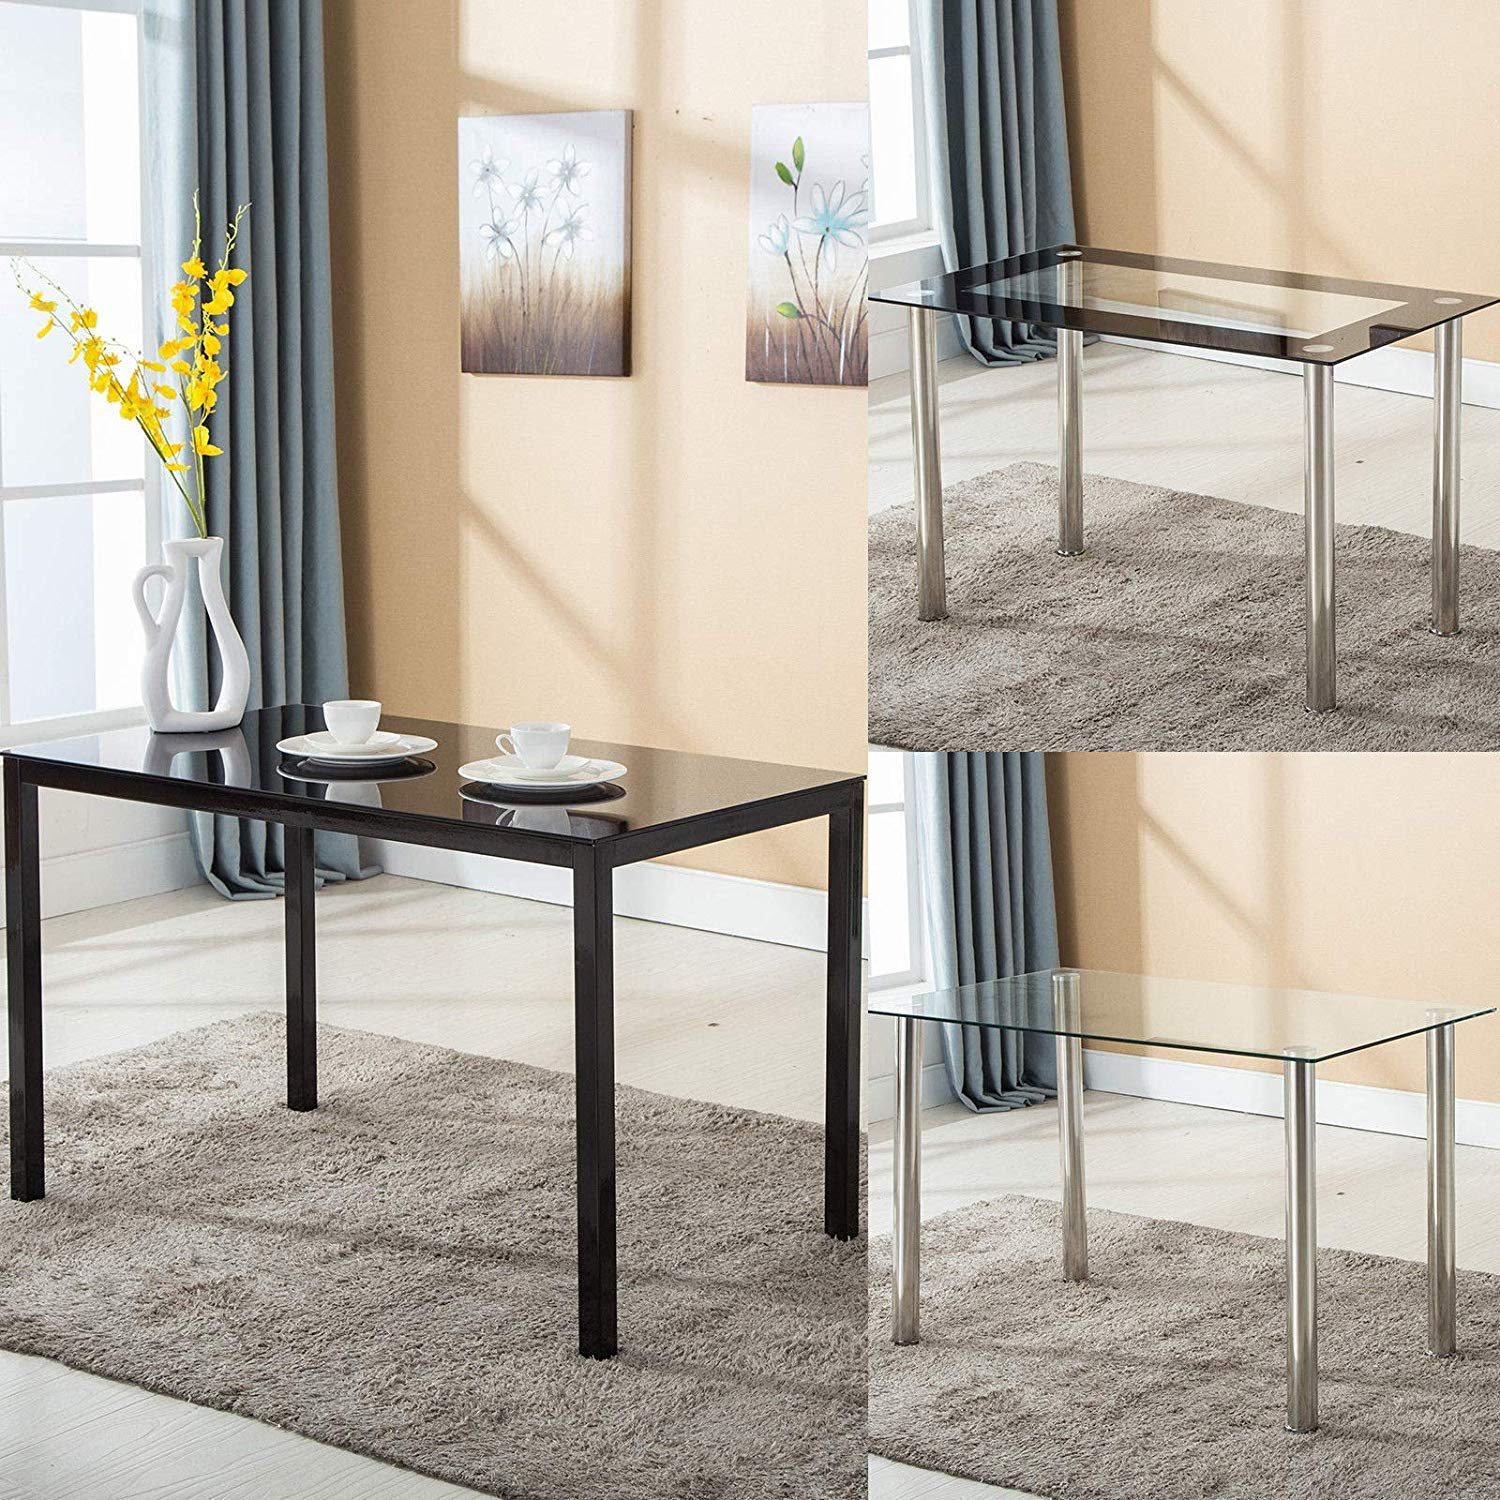 Mecor Dining Table Modern Minimallist Glass Kitchen Table Rectangular Transparent Metal Legs 47IN for 4/6 Persons,Clear by Mecor (Image #2)